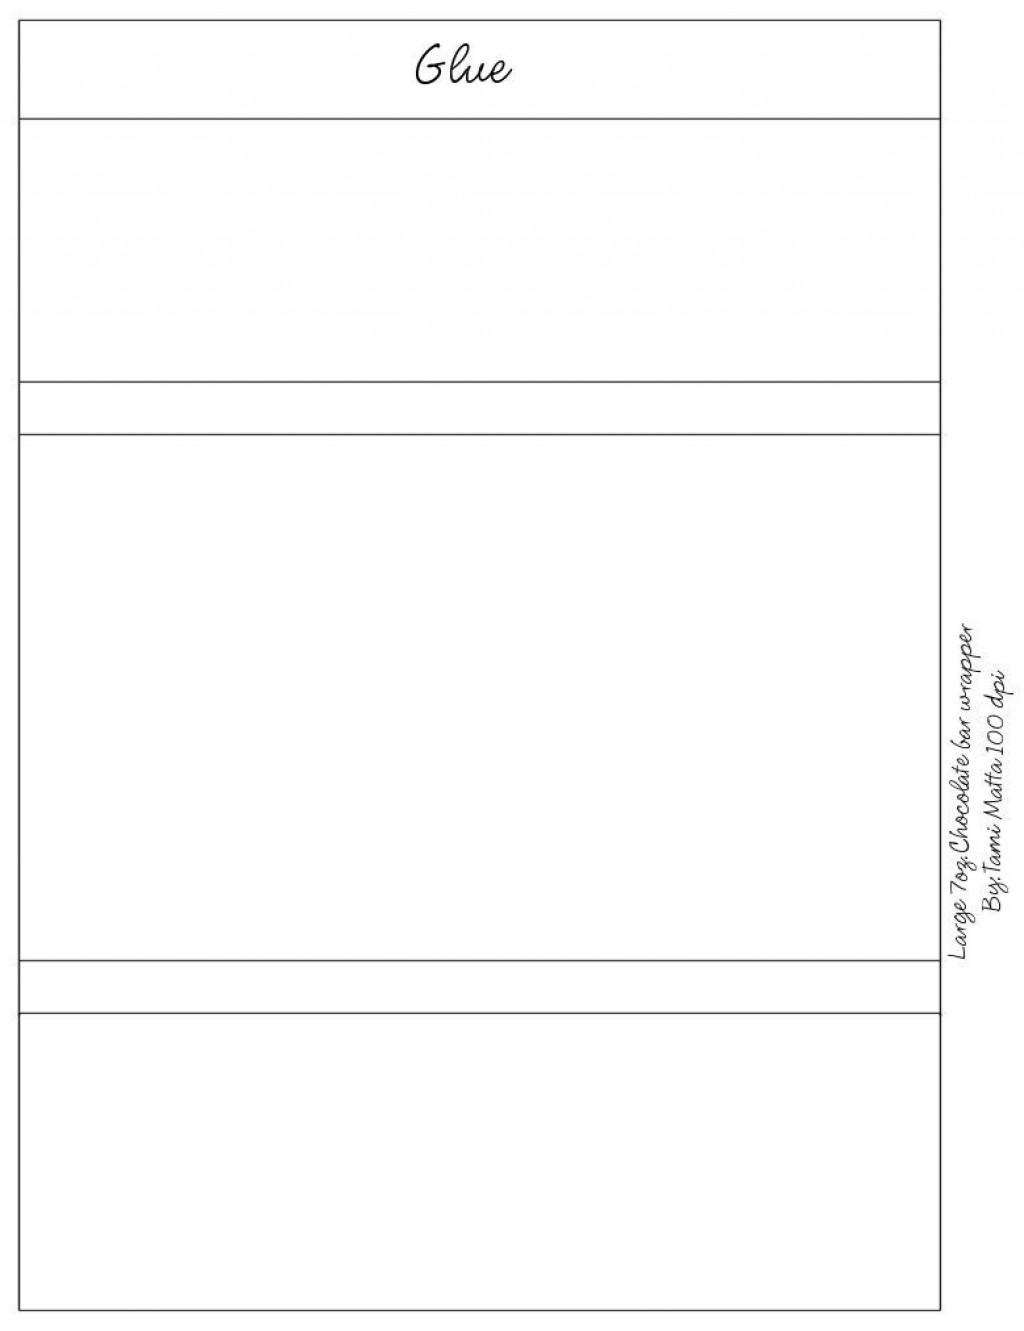 005 Stunning Free Chocolate Bar Wrapper Template Word Idea  ForLarge